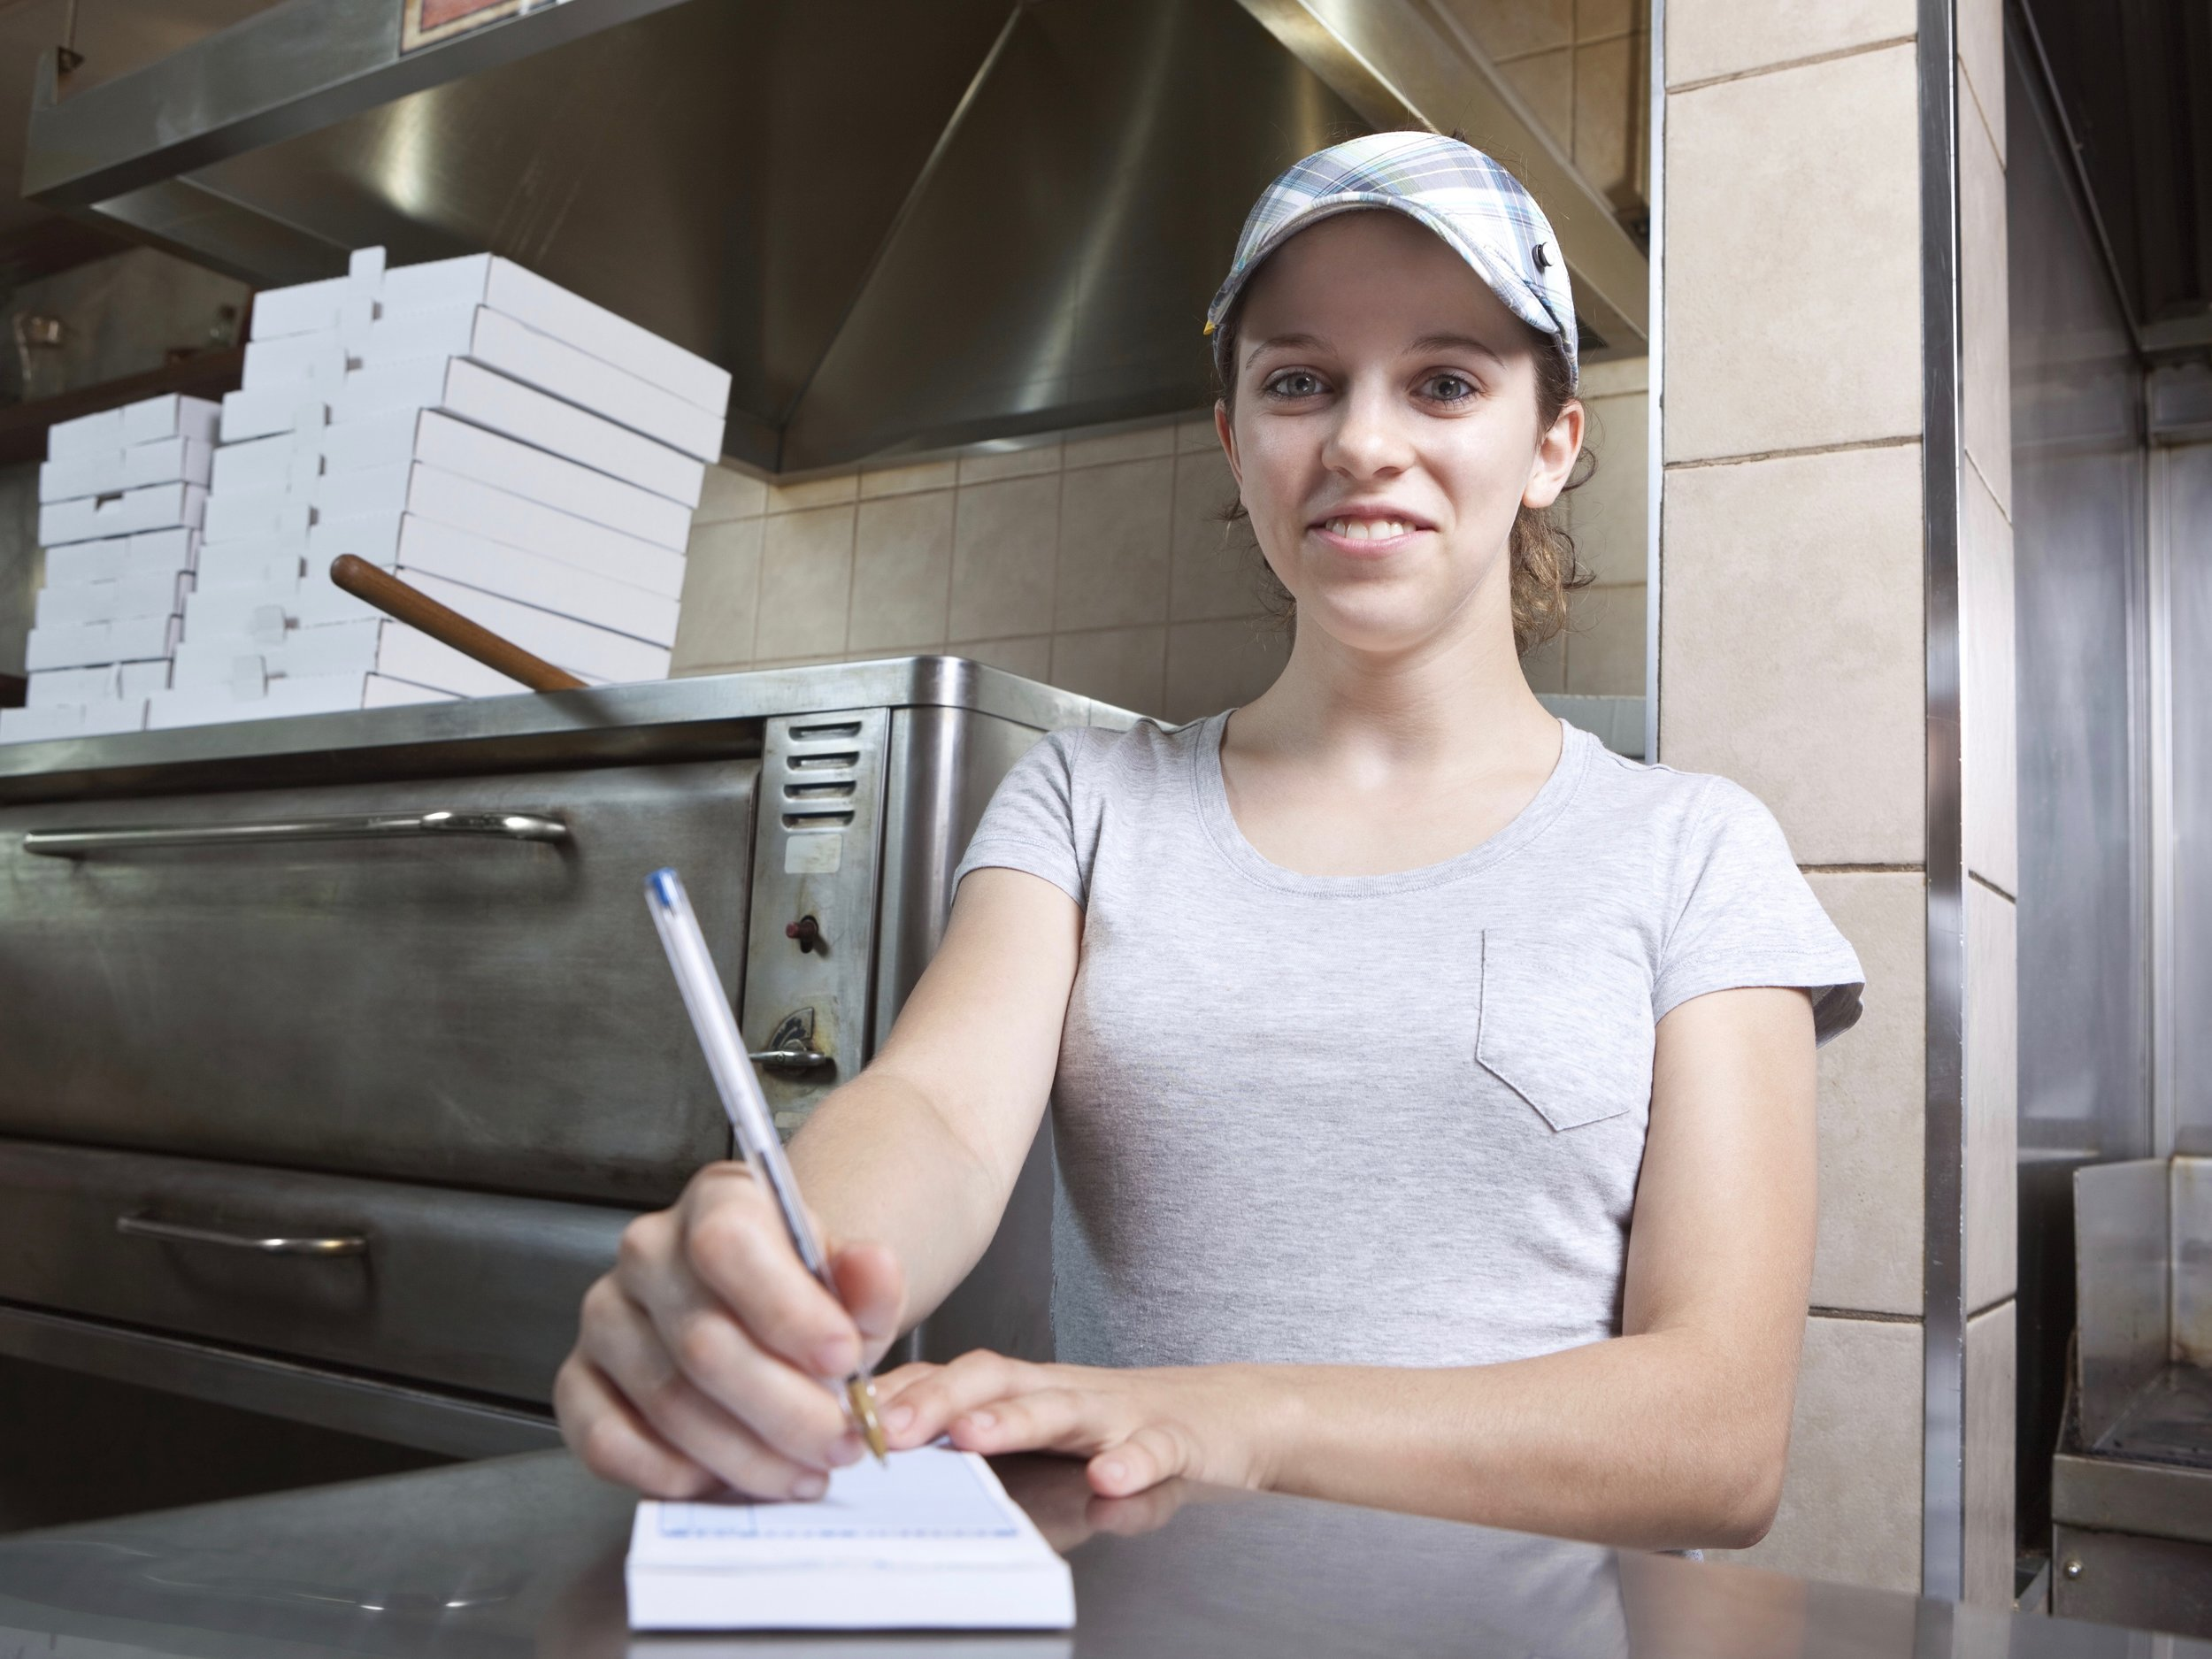 A new study finds a higher minimum wage hikes pay across the board for low-wage workers, most of whom are women. (Shutterstock)